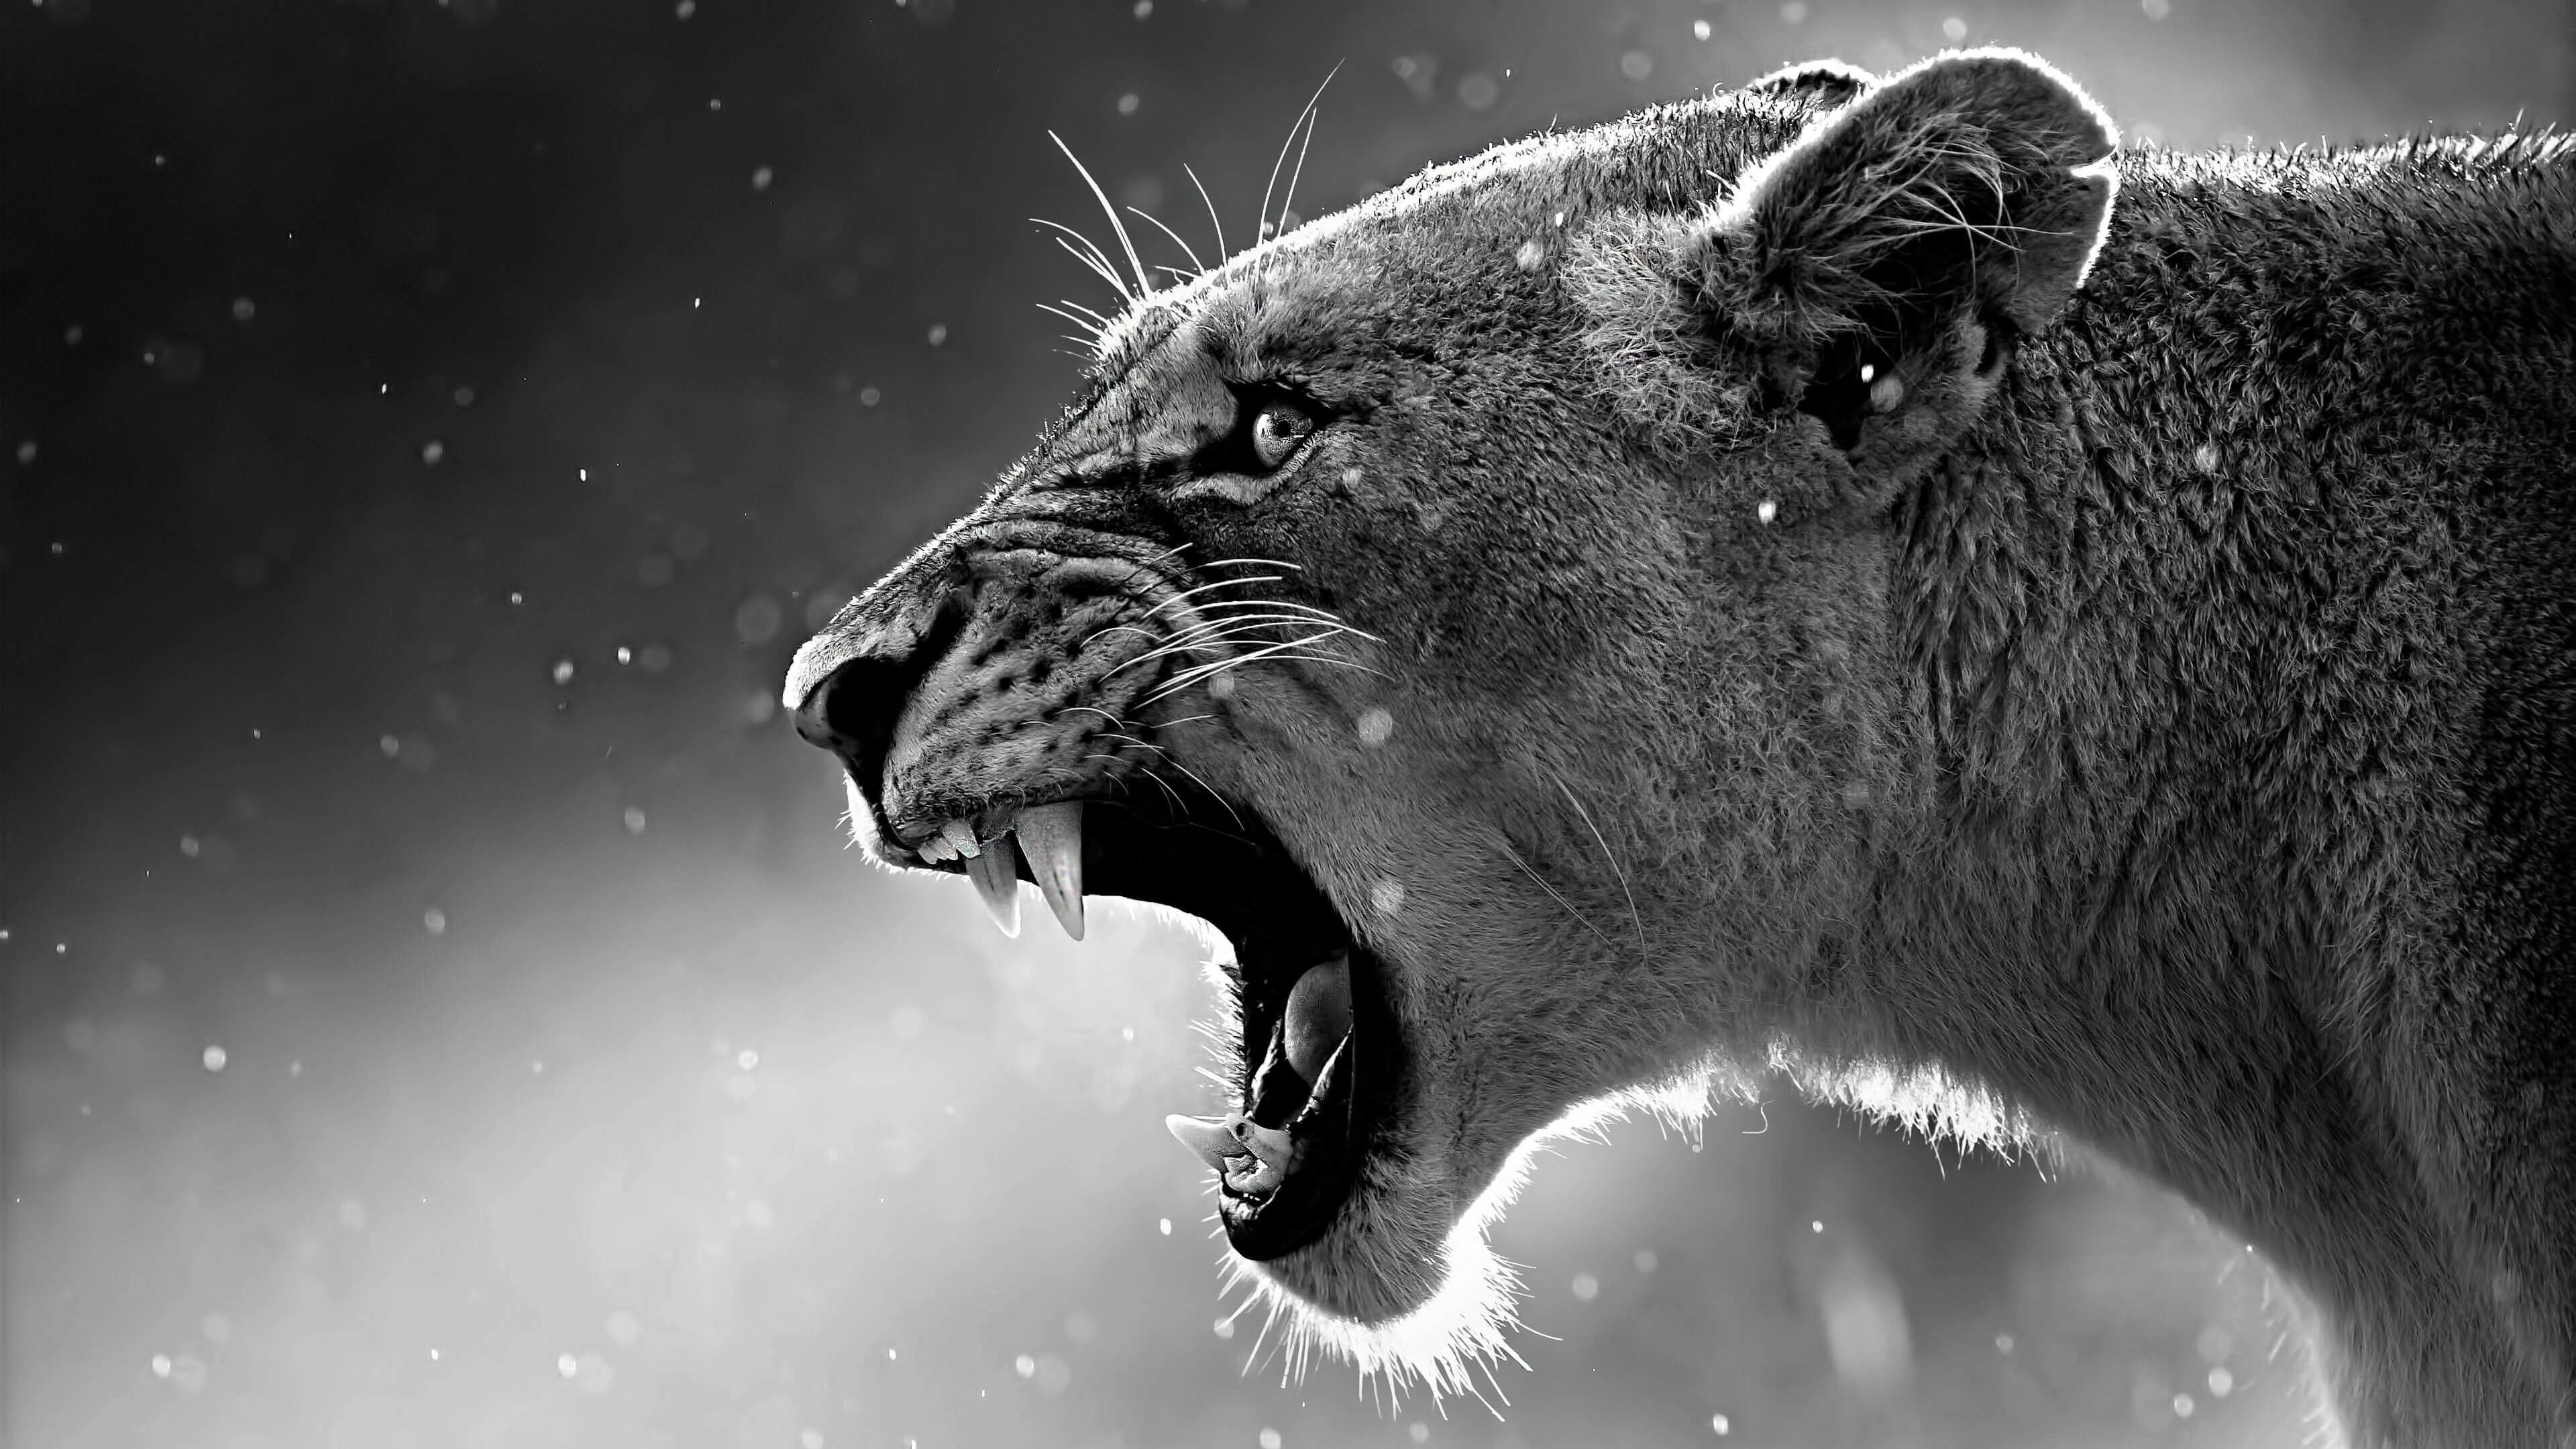 3840x2160 Lioness In Black And White Wallpaper For 4k Desktop Hd Background Wallpapers Free Amazing Cool